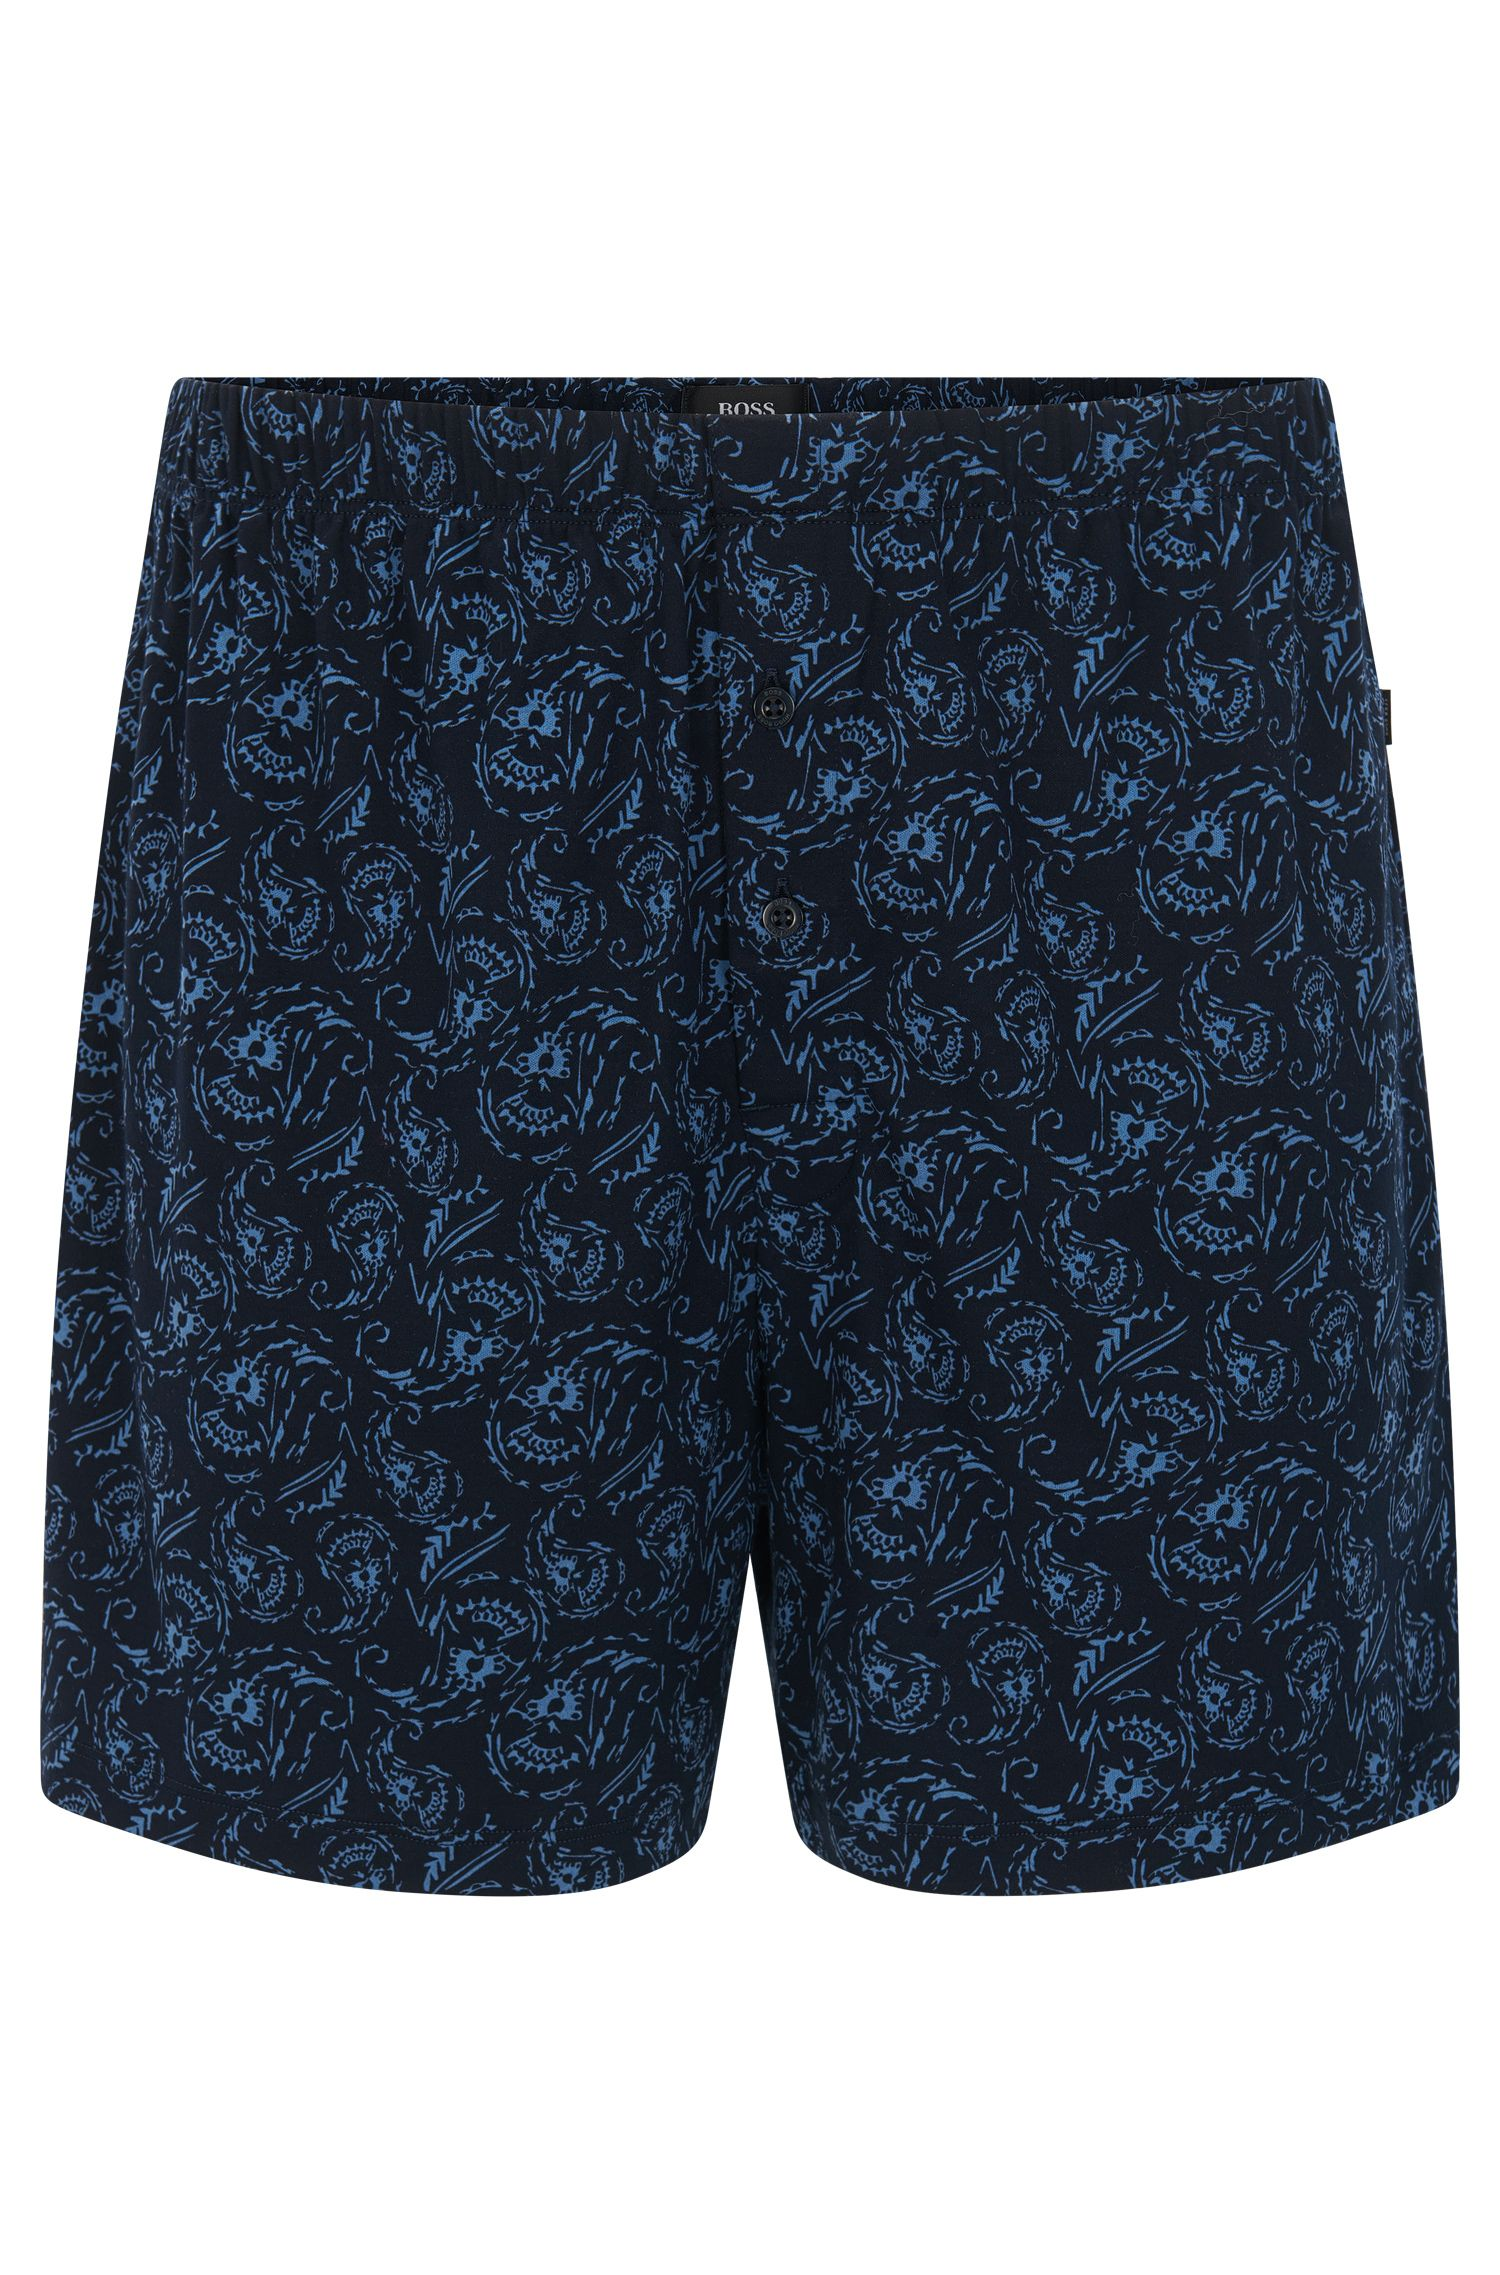 Patterned boxer shorts in cotton and modal: 'Boxer Short CW'